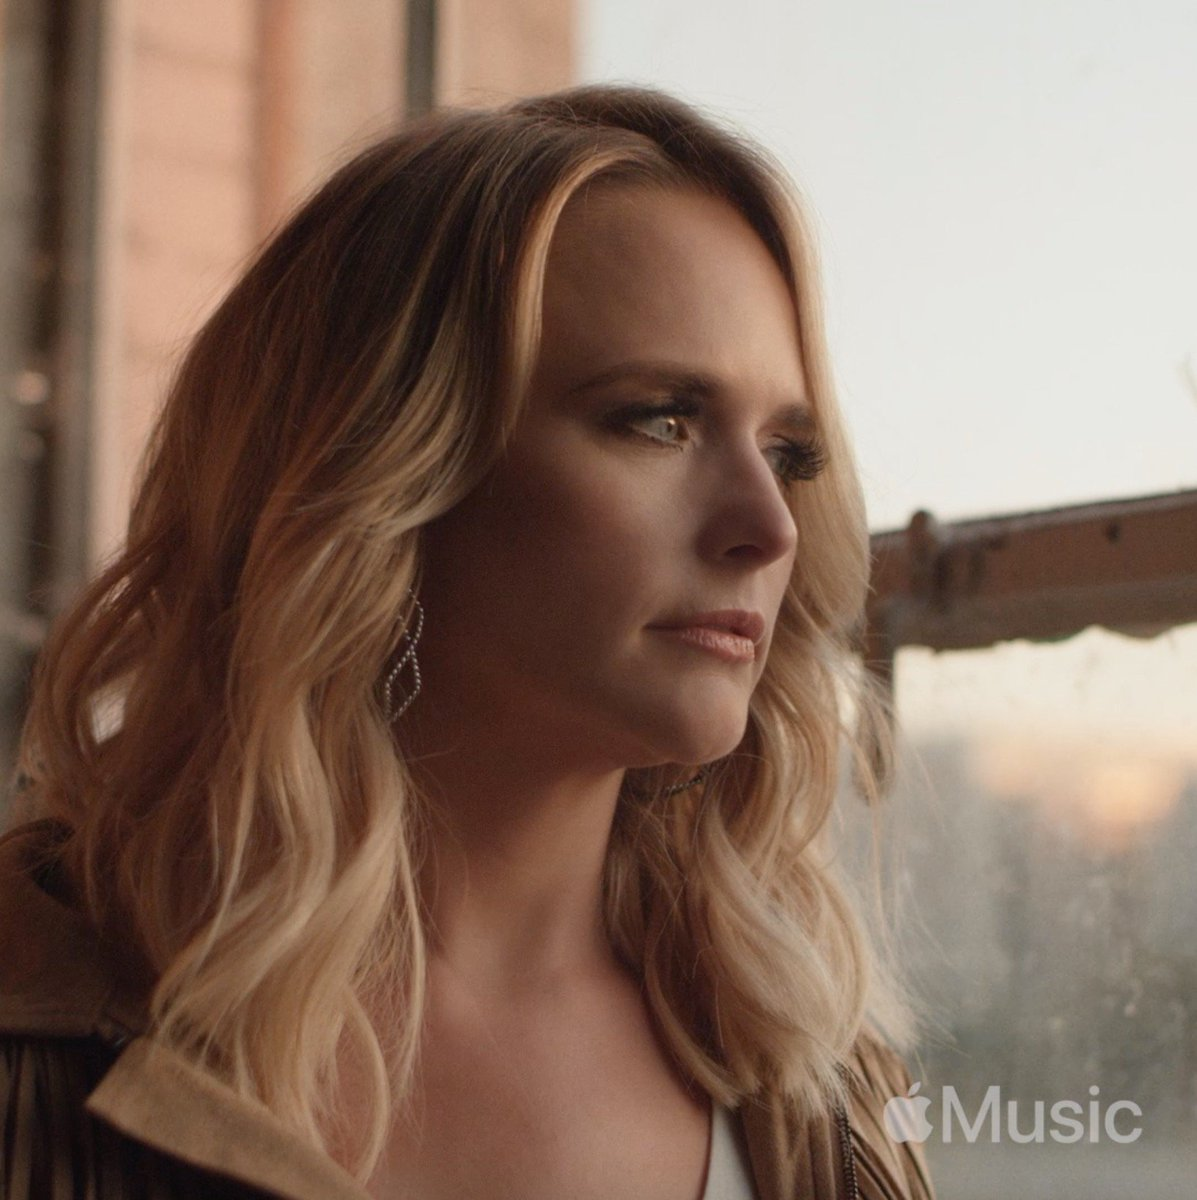 """I believe in being honest in my music, because it's my job to say """"here's my story, hope y'all have one similar."""" Watch the full #Wildcard short film exclusively on @AppleMusic here: http://apple.co/Miranda"""